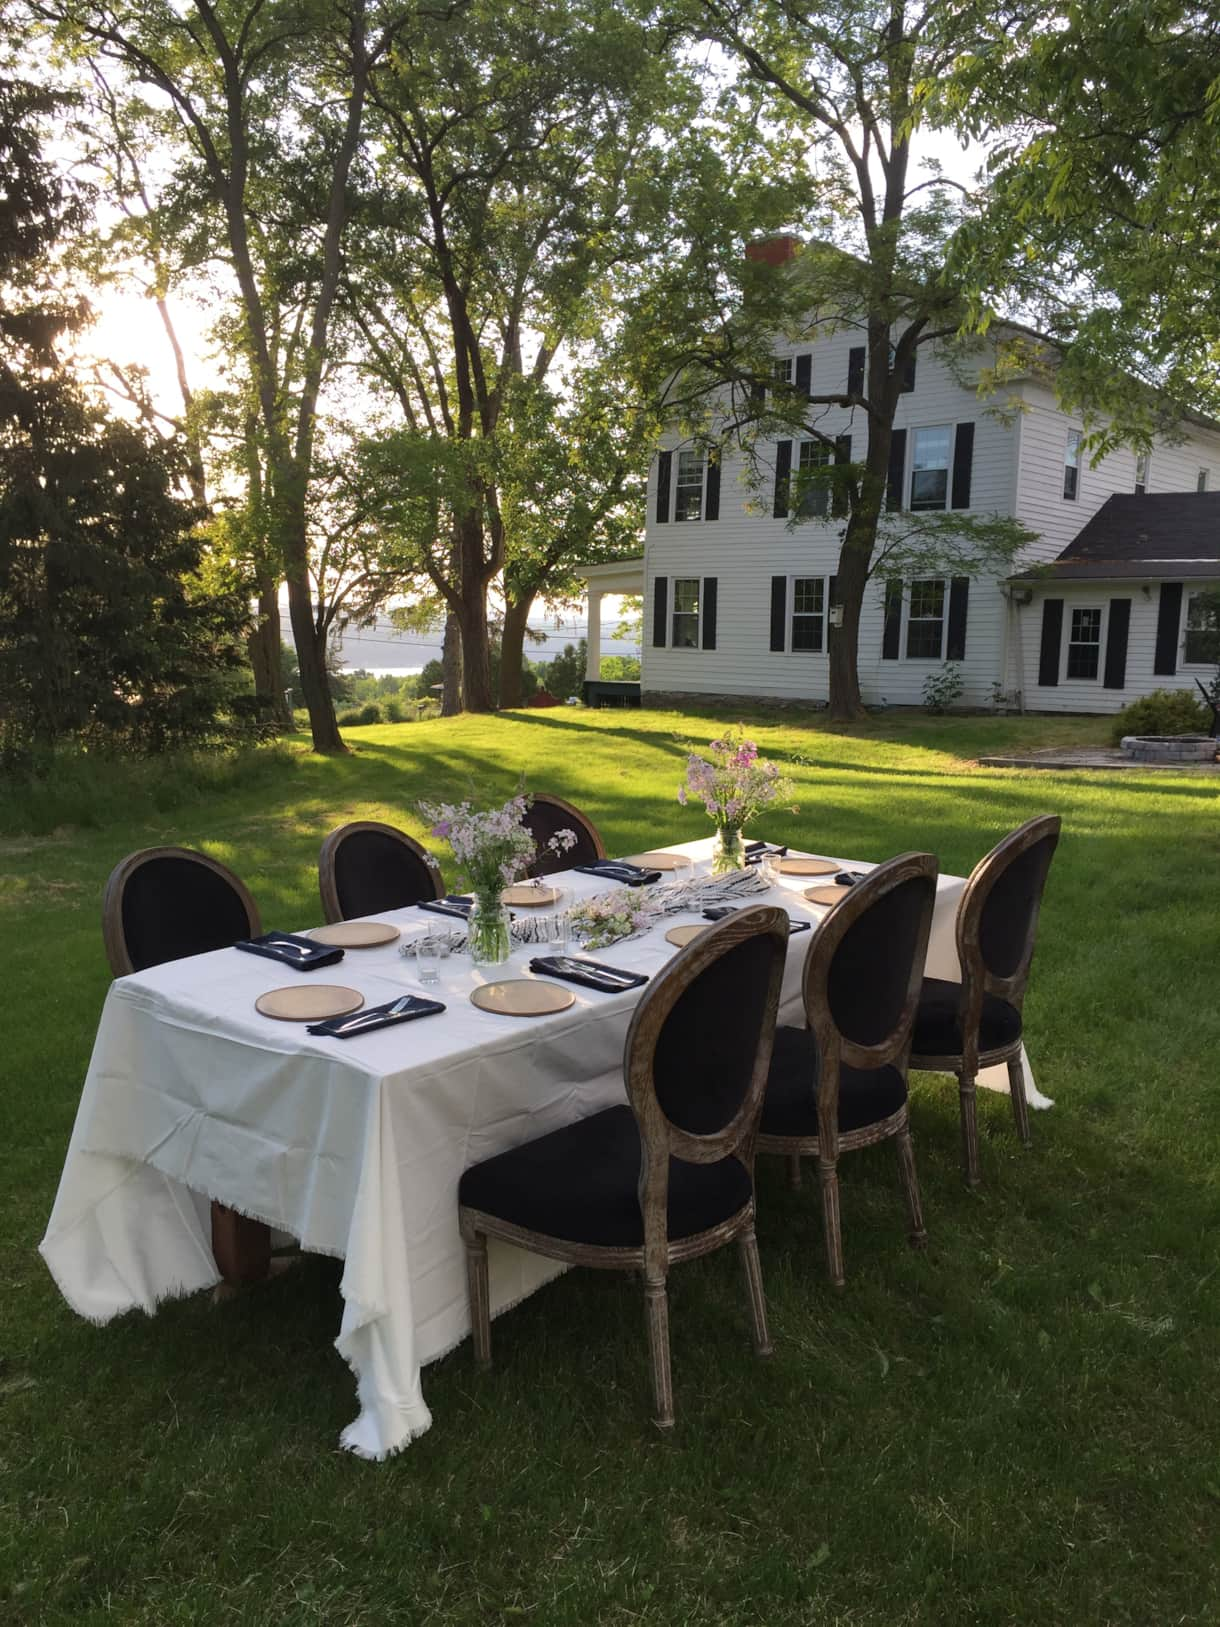 Dining alfresco at the Farm